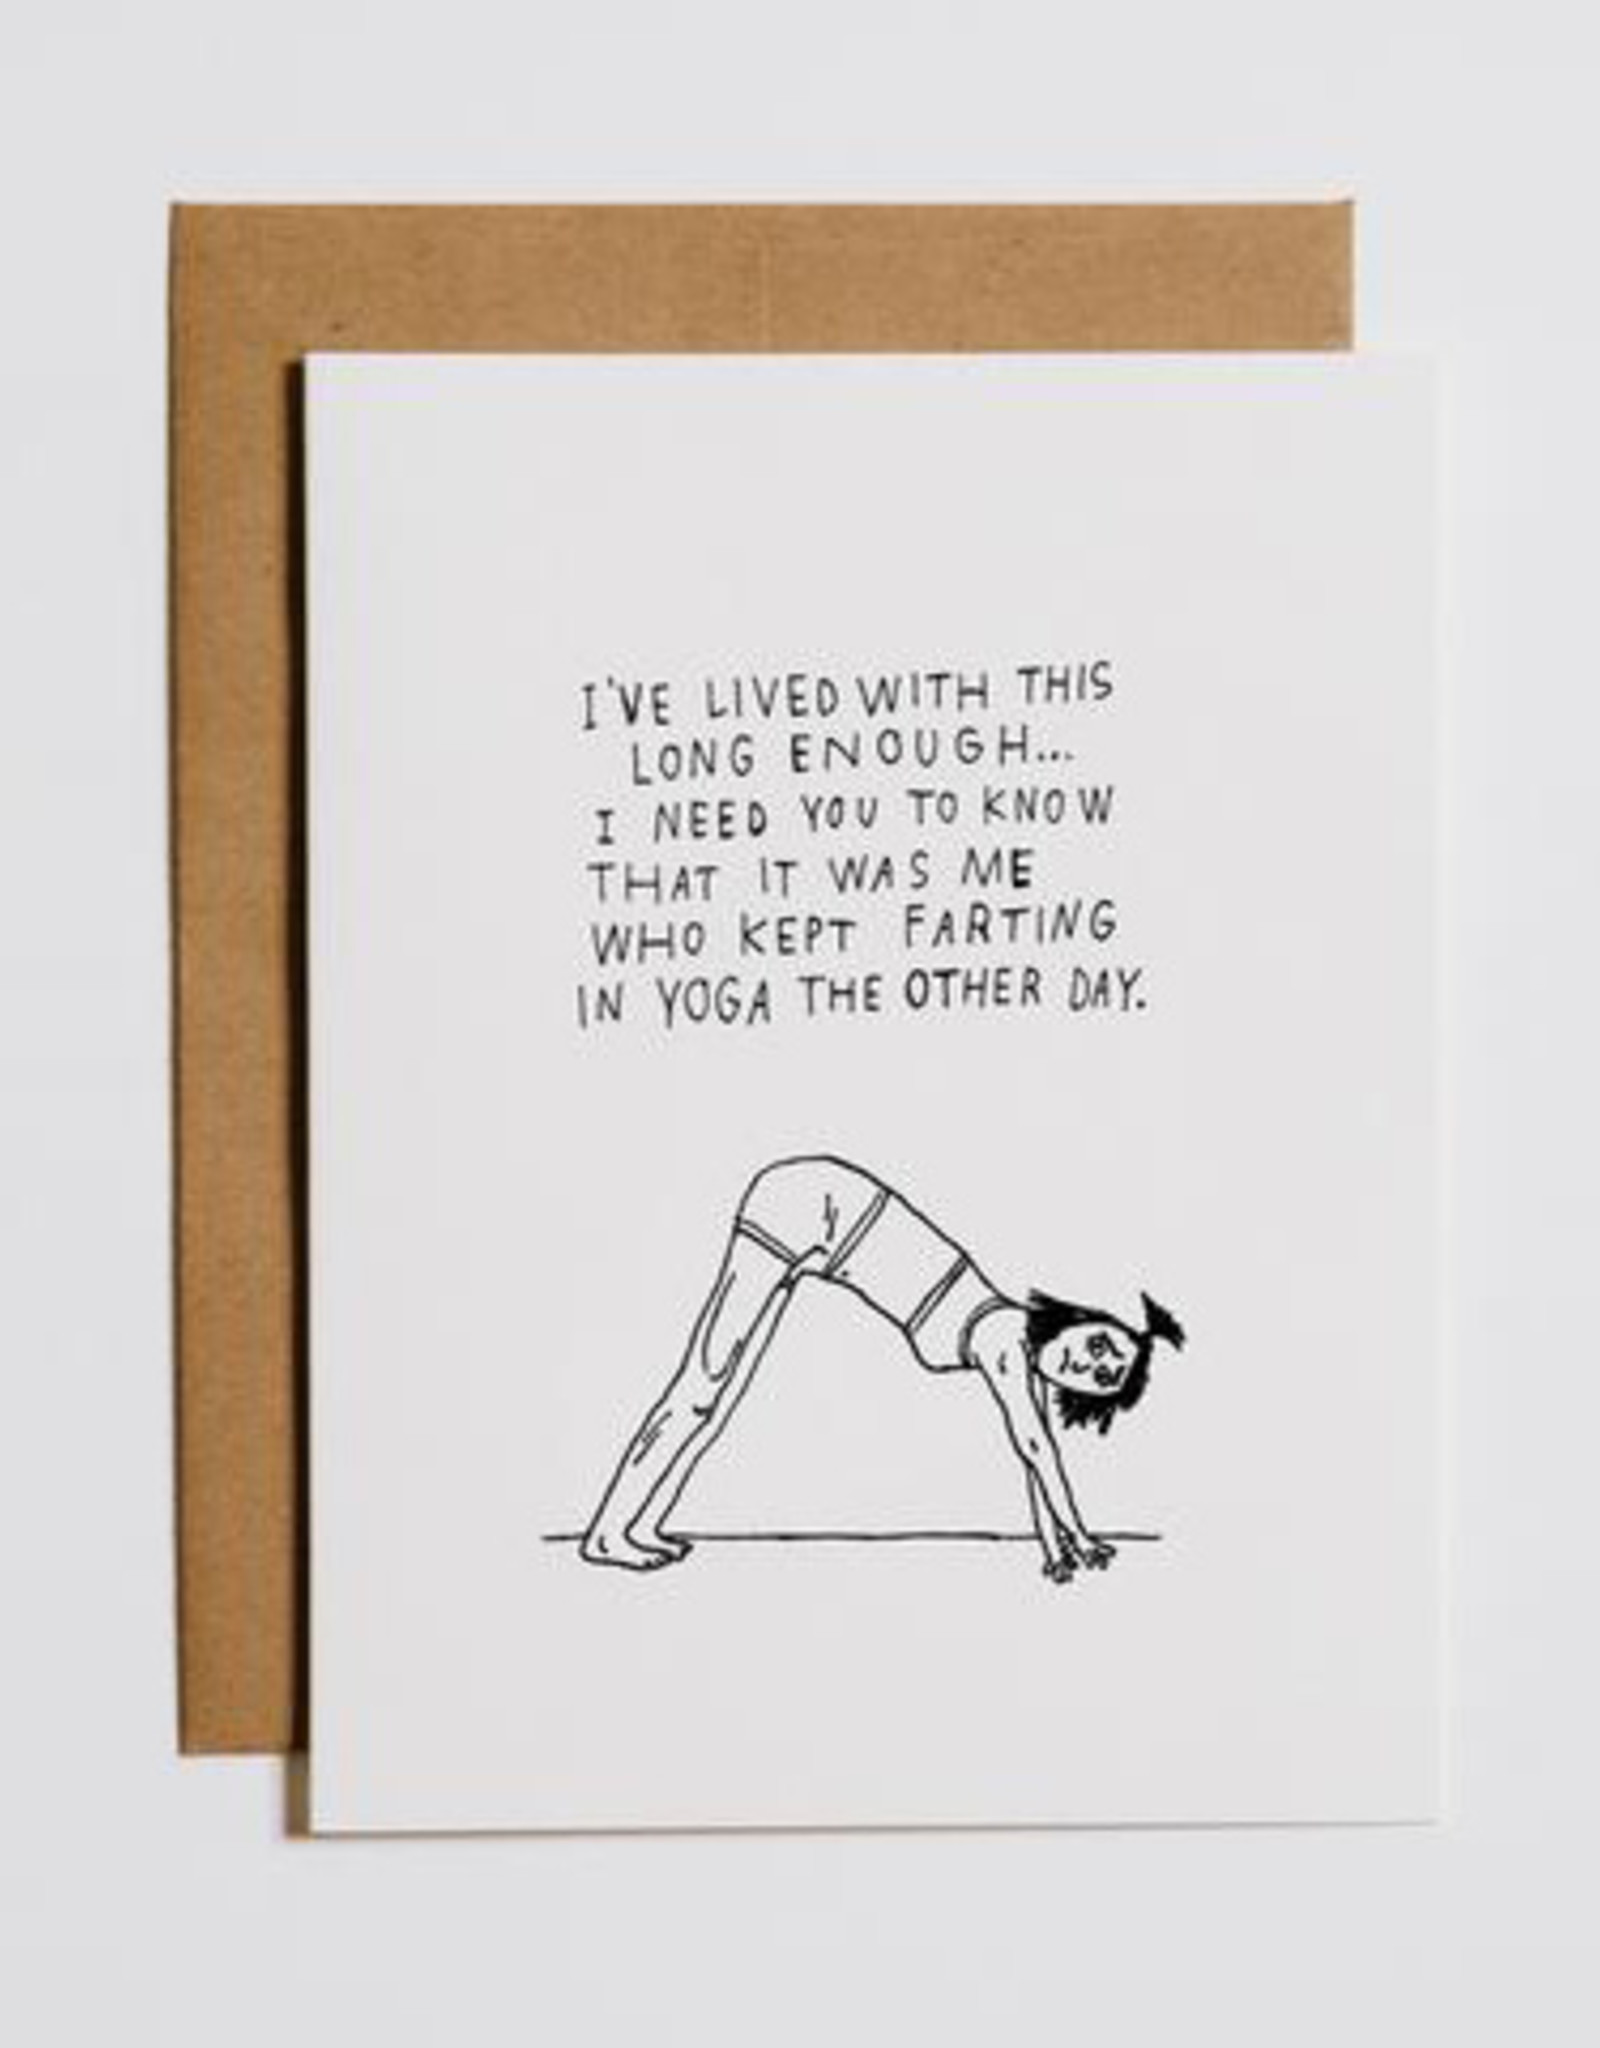 I've Lived With This Long Enough... Farting in Yoga Greeting Card